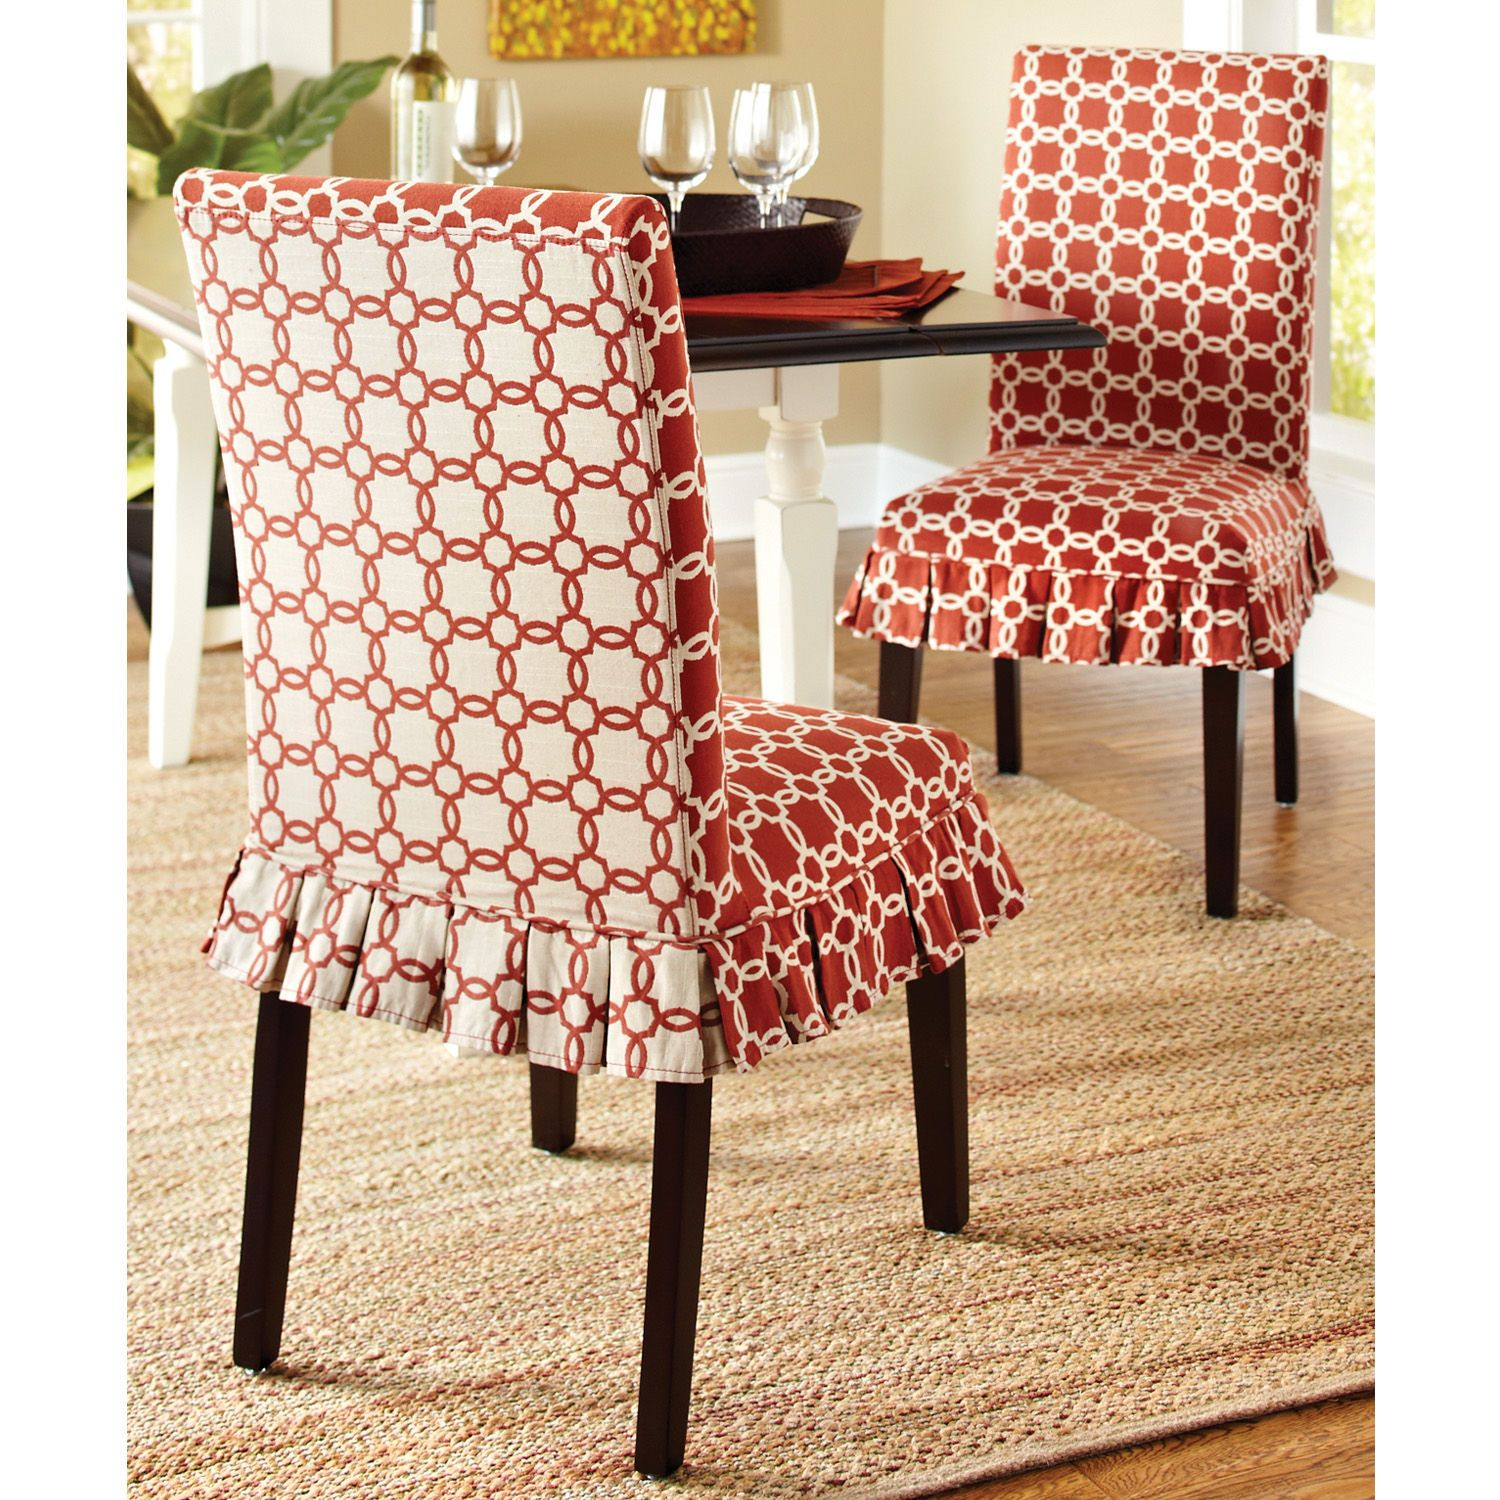 Fun Slipcovers From Pier